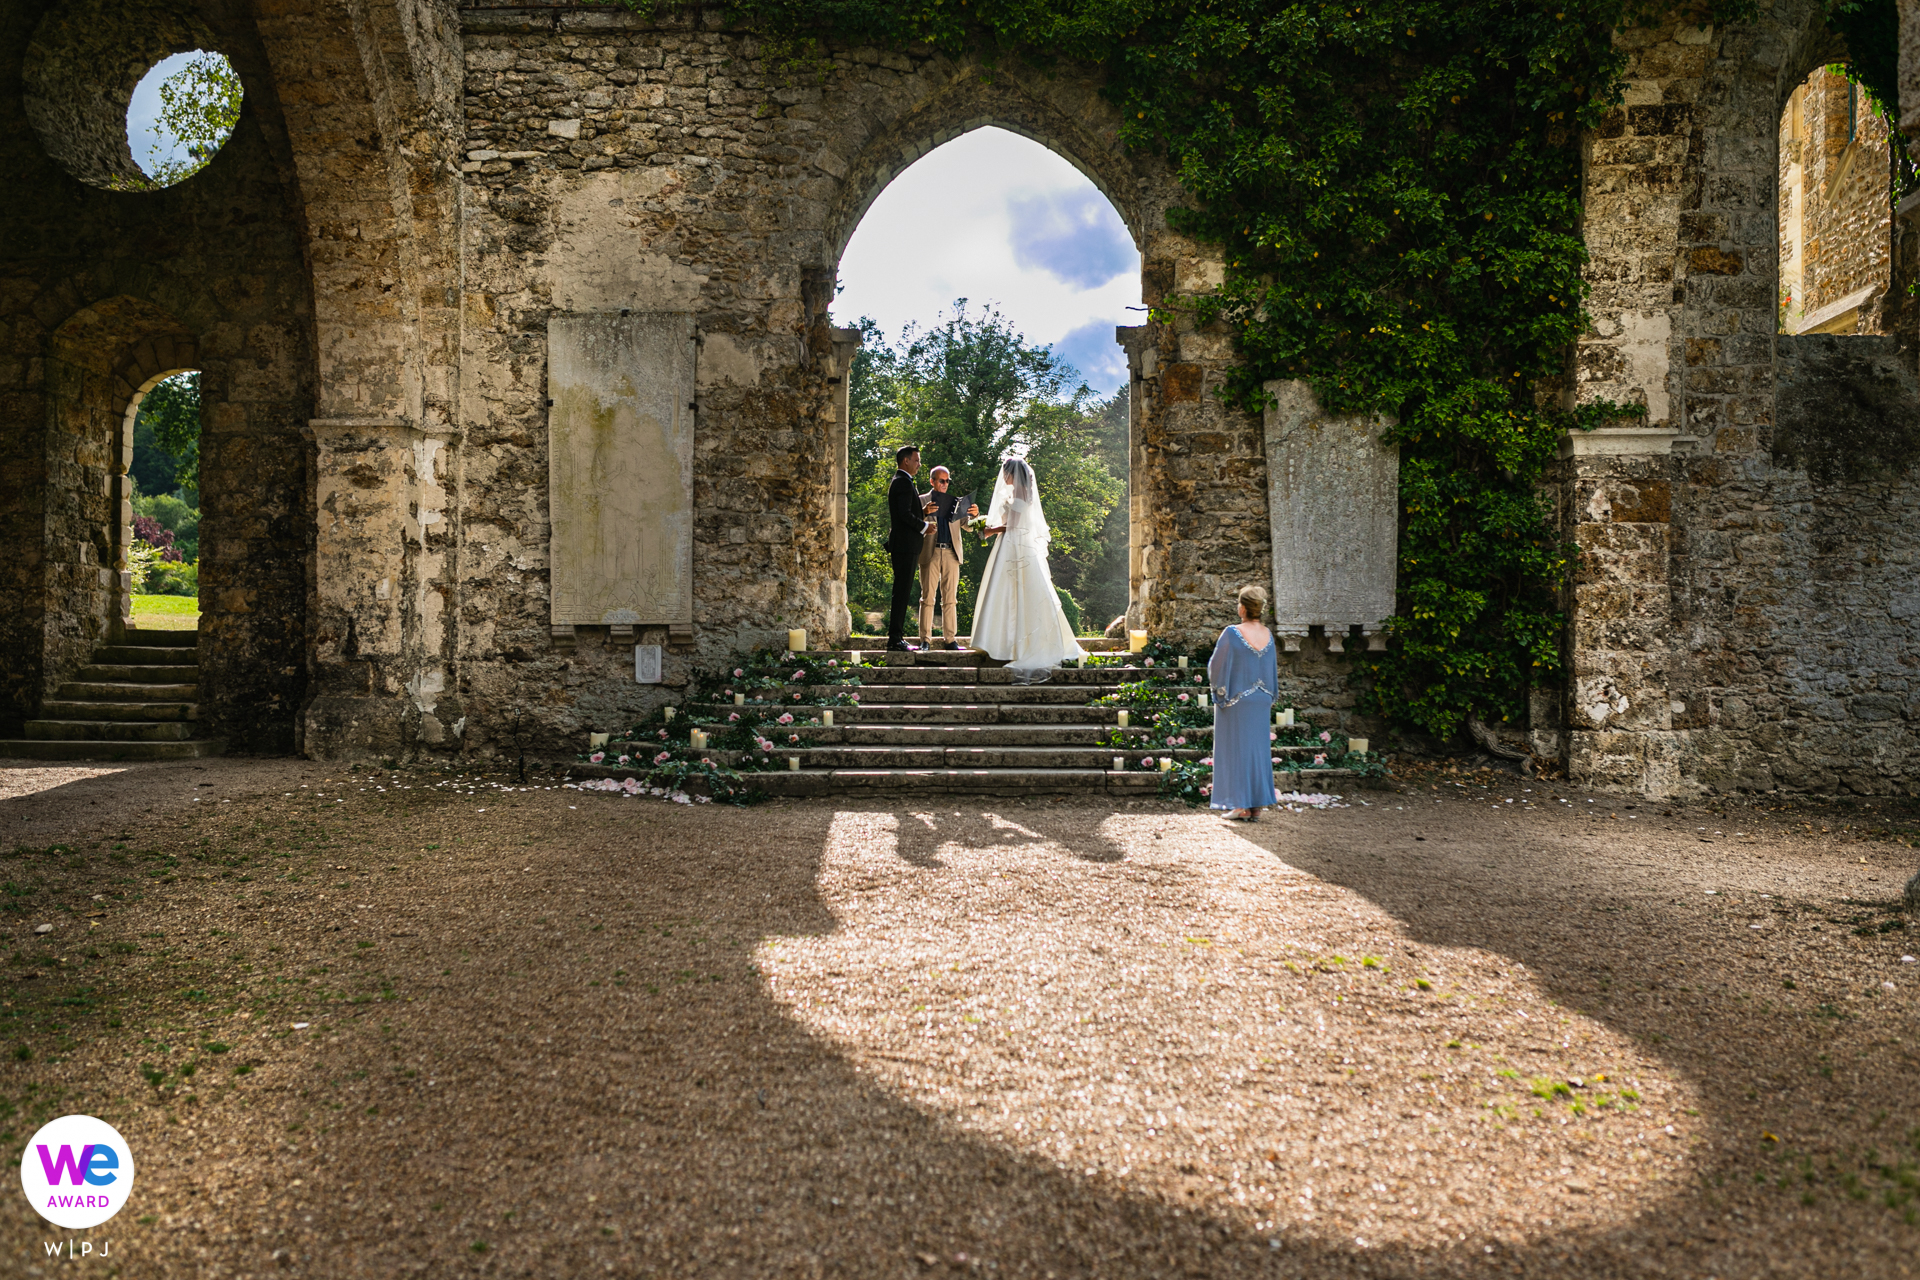 Stone Abbey in France - Elopement Photographer | They wanted to get married in France. The abbey had an incredible backdrop for their ceremony, which took place beneath a stone archway